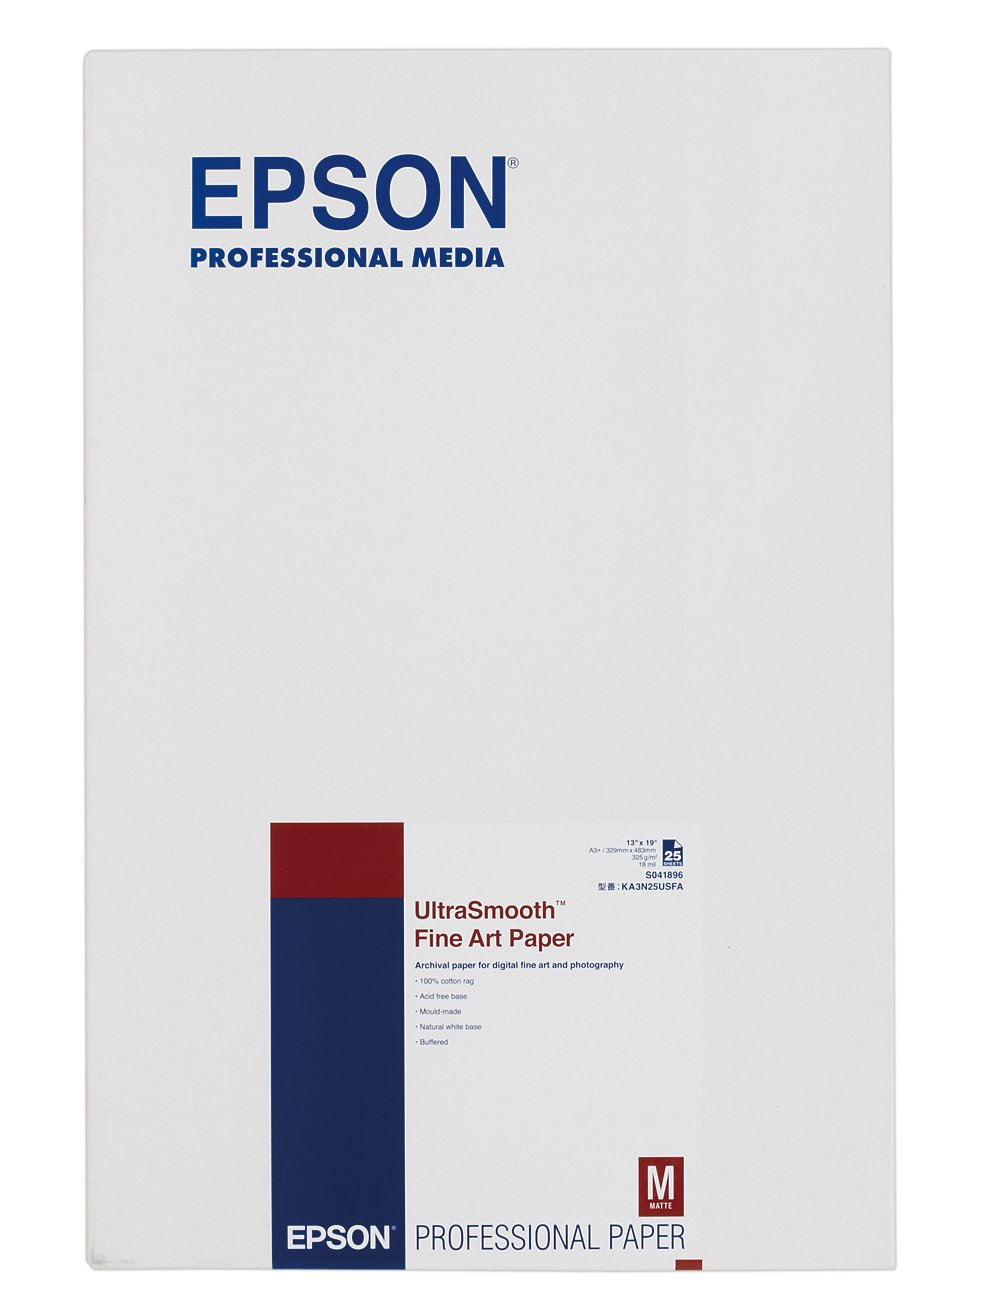 Cotton Rag Paper Epson S041896 Ultrasmooth Fine Art Paper Paper Two-Sided Coated Pa